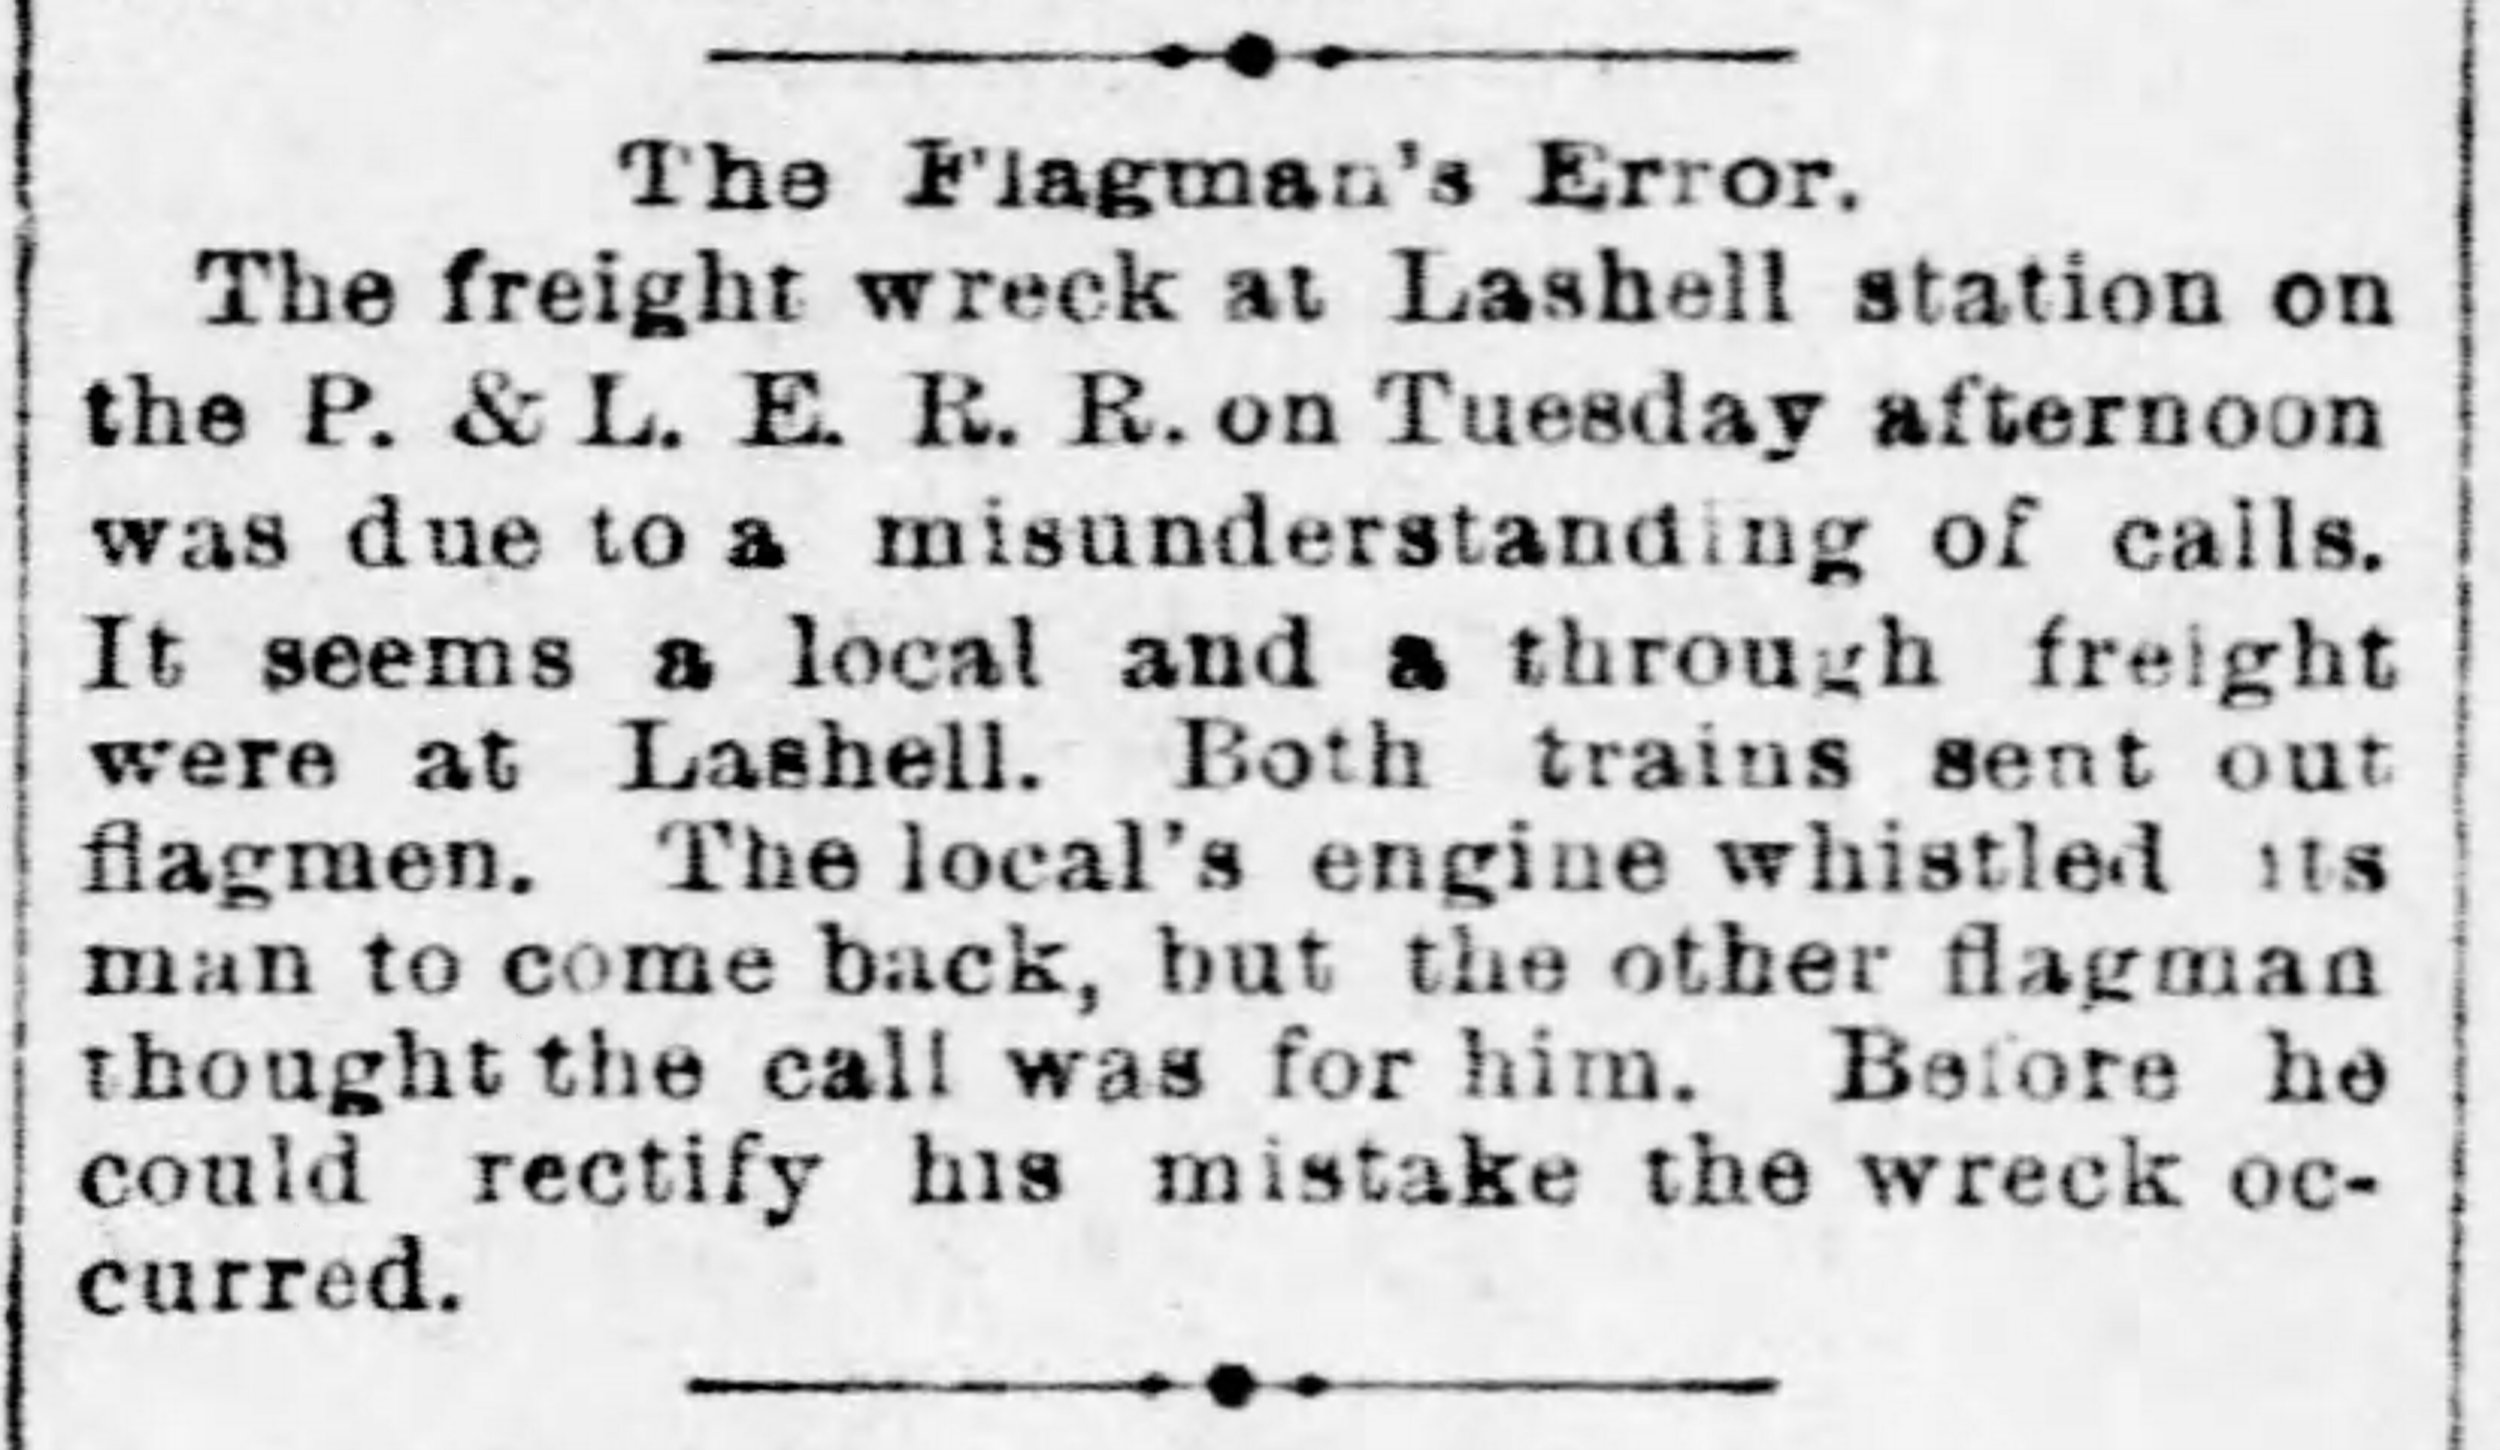 Pittsburgh Daily Post, August 1, 1889